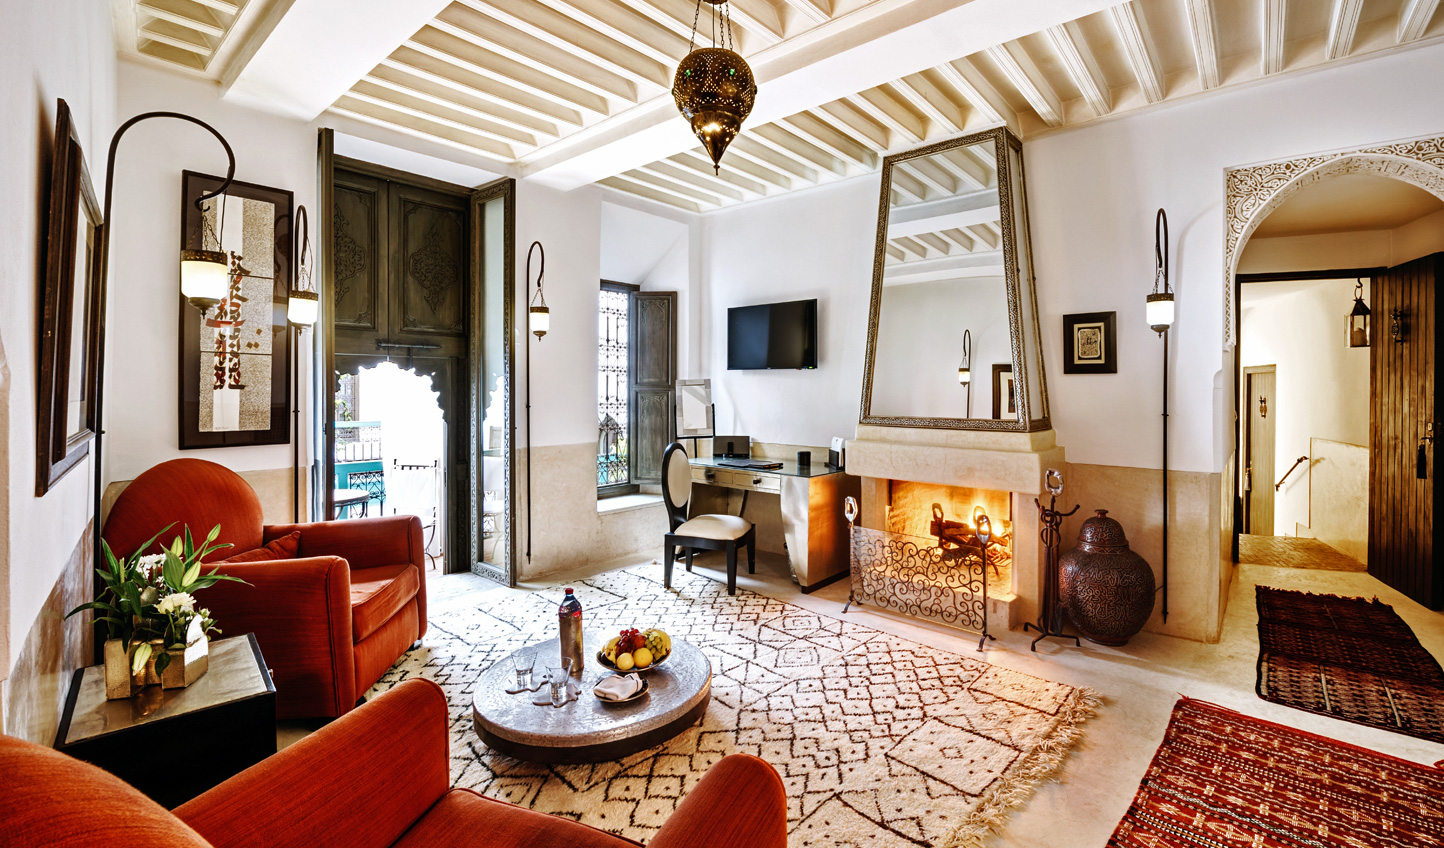 Discover elegant suites reminiscent of traditional riads